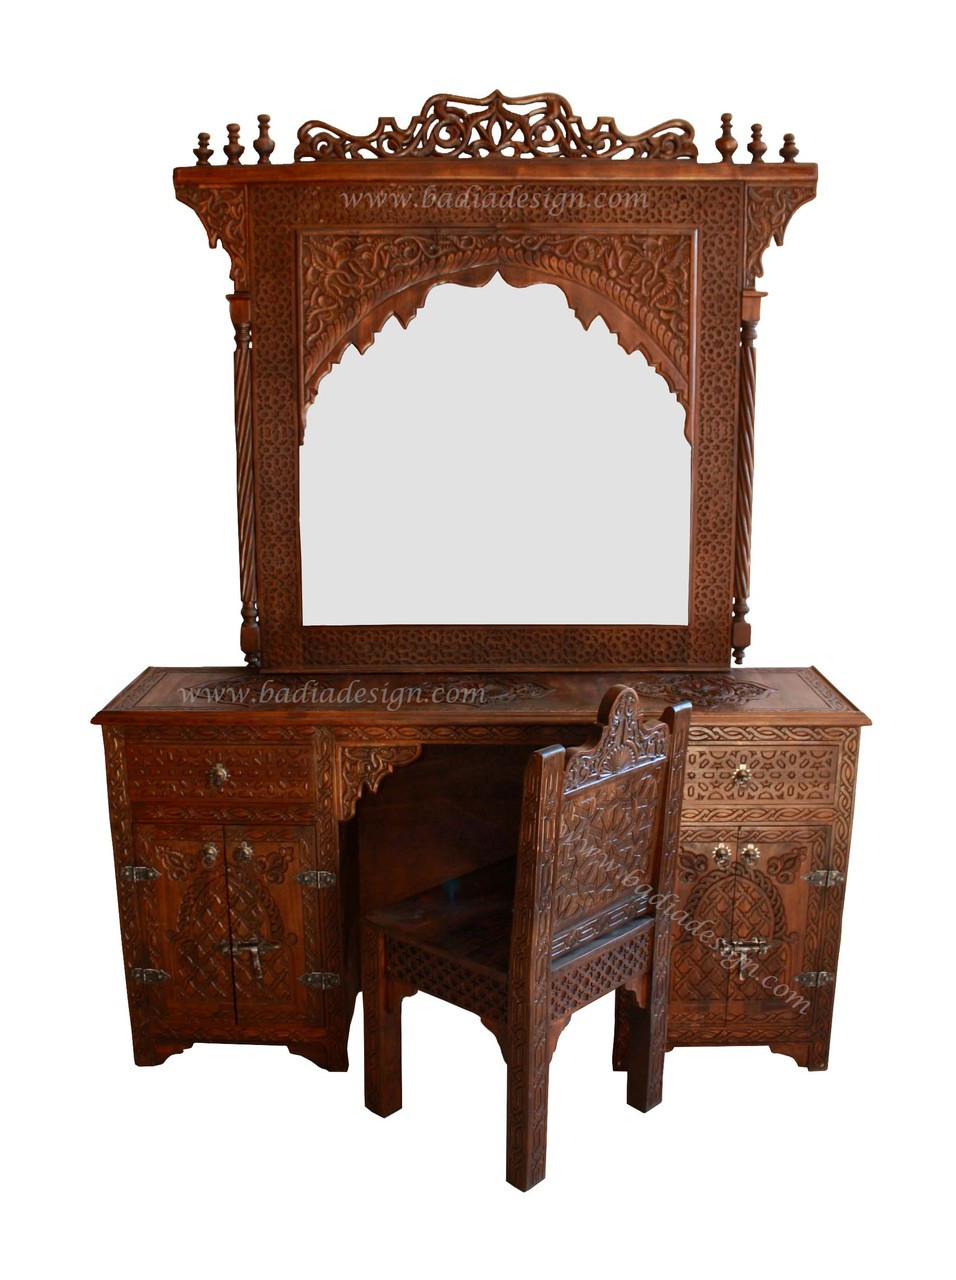 Hand Carved Wooden Makeup Vanity And Chair From Badia Design Inc